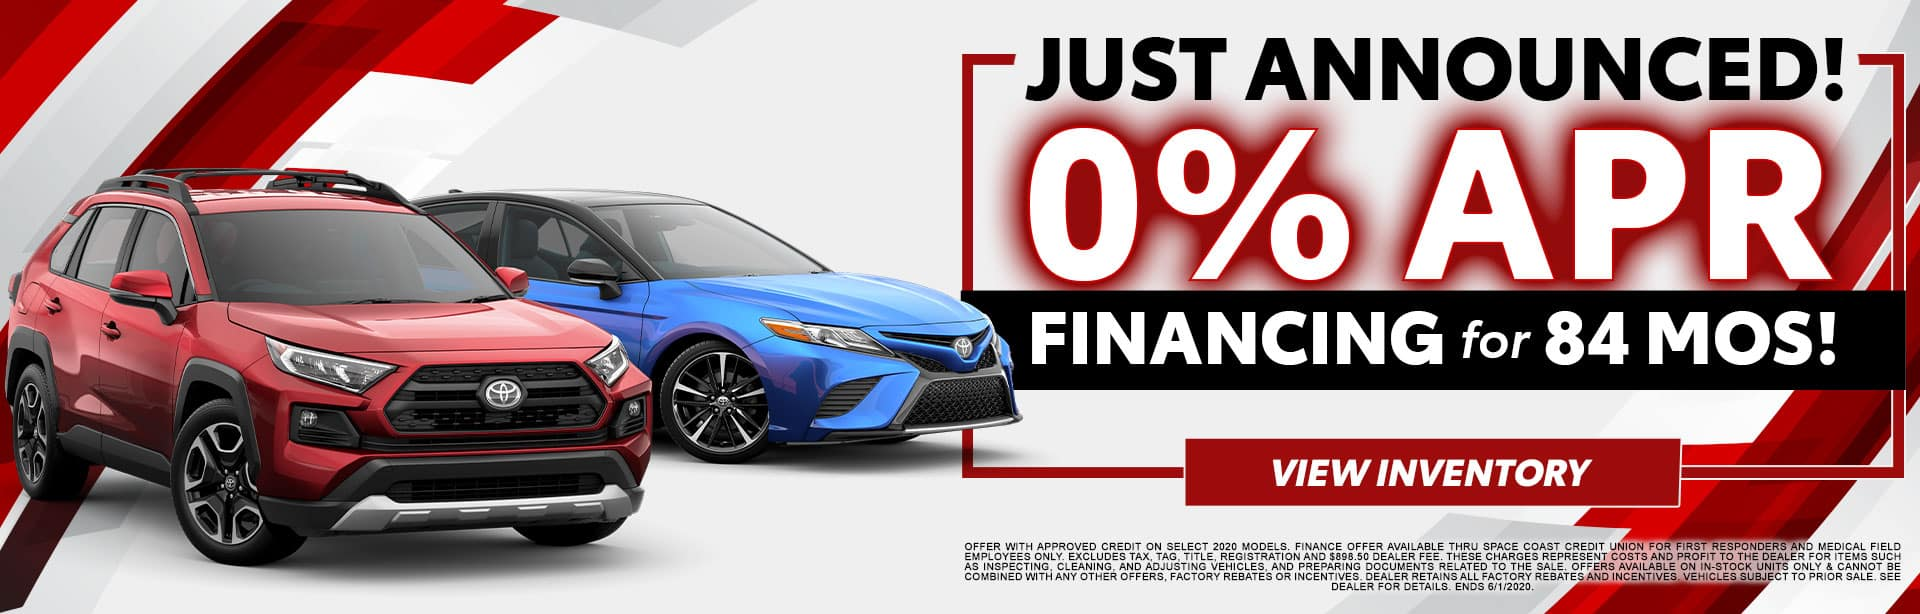 0% APR Financing for 84 Months at Bev Smith Toyota!